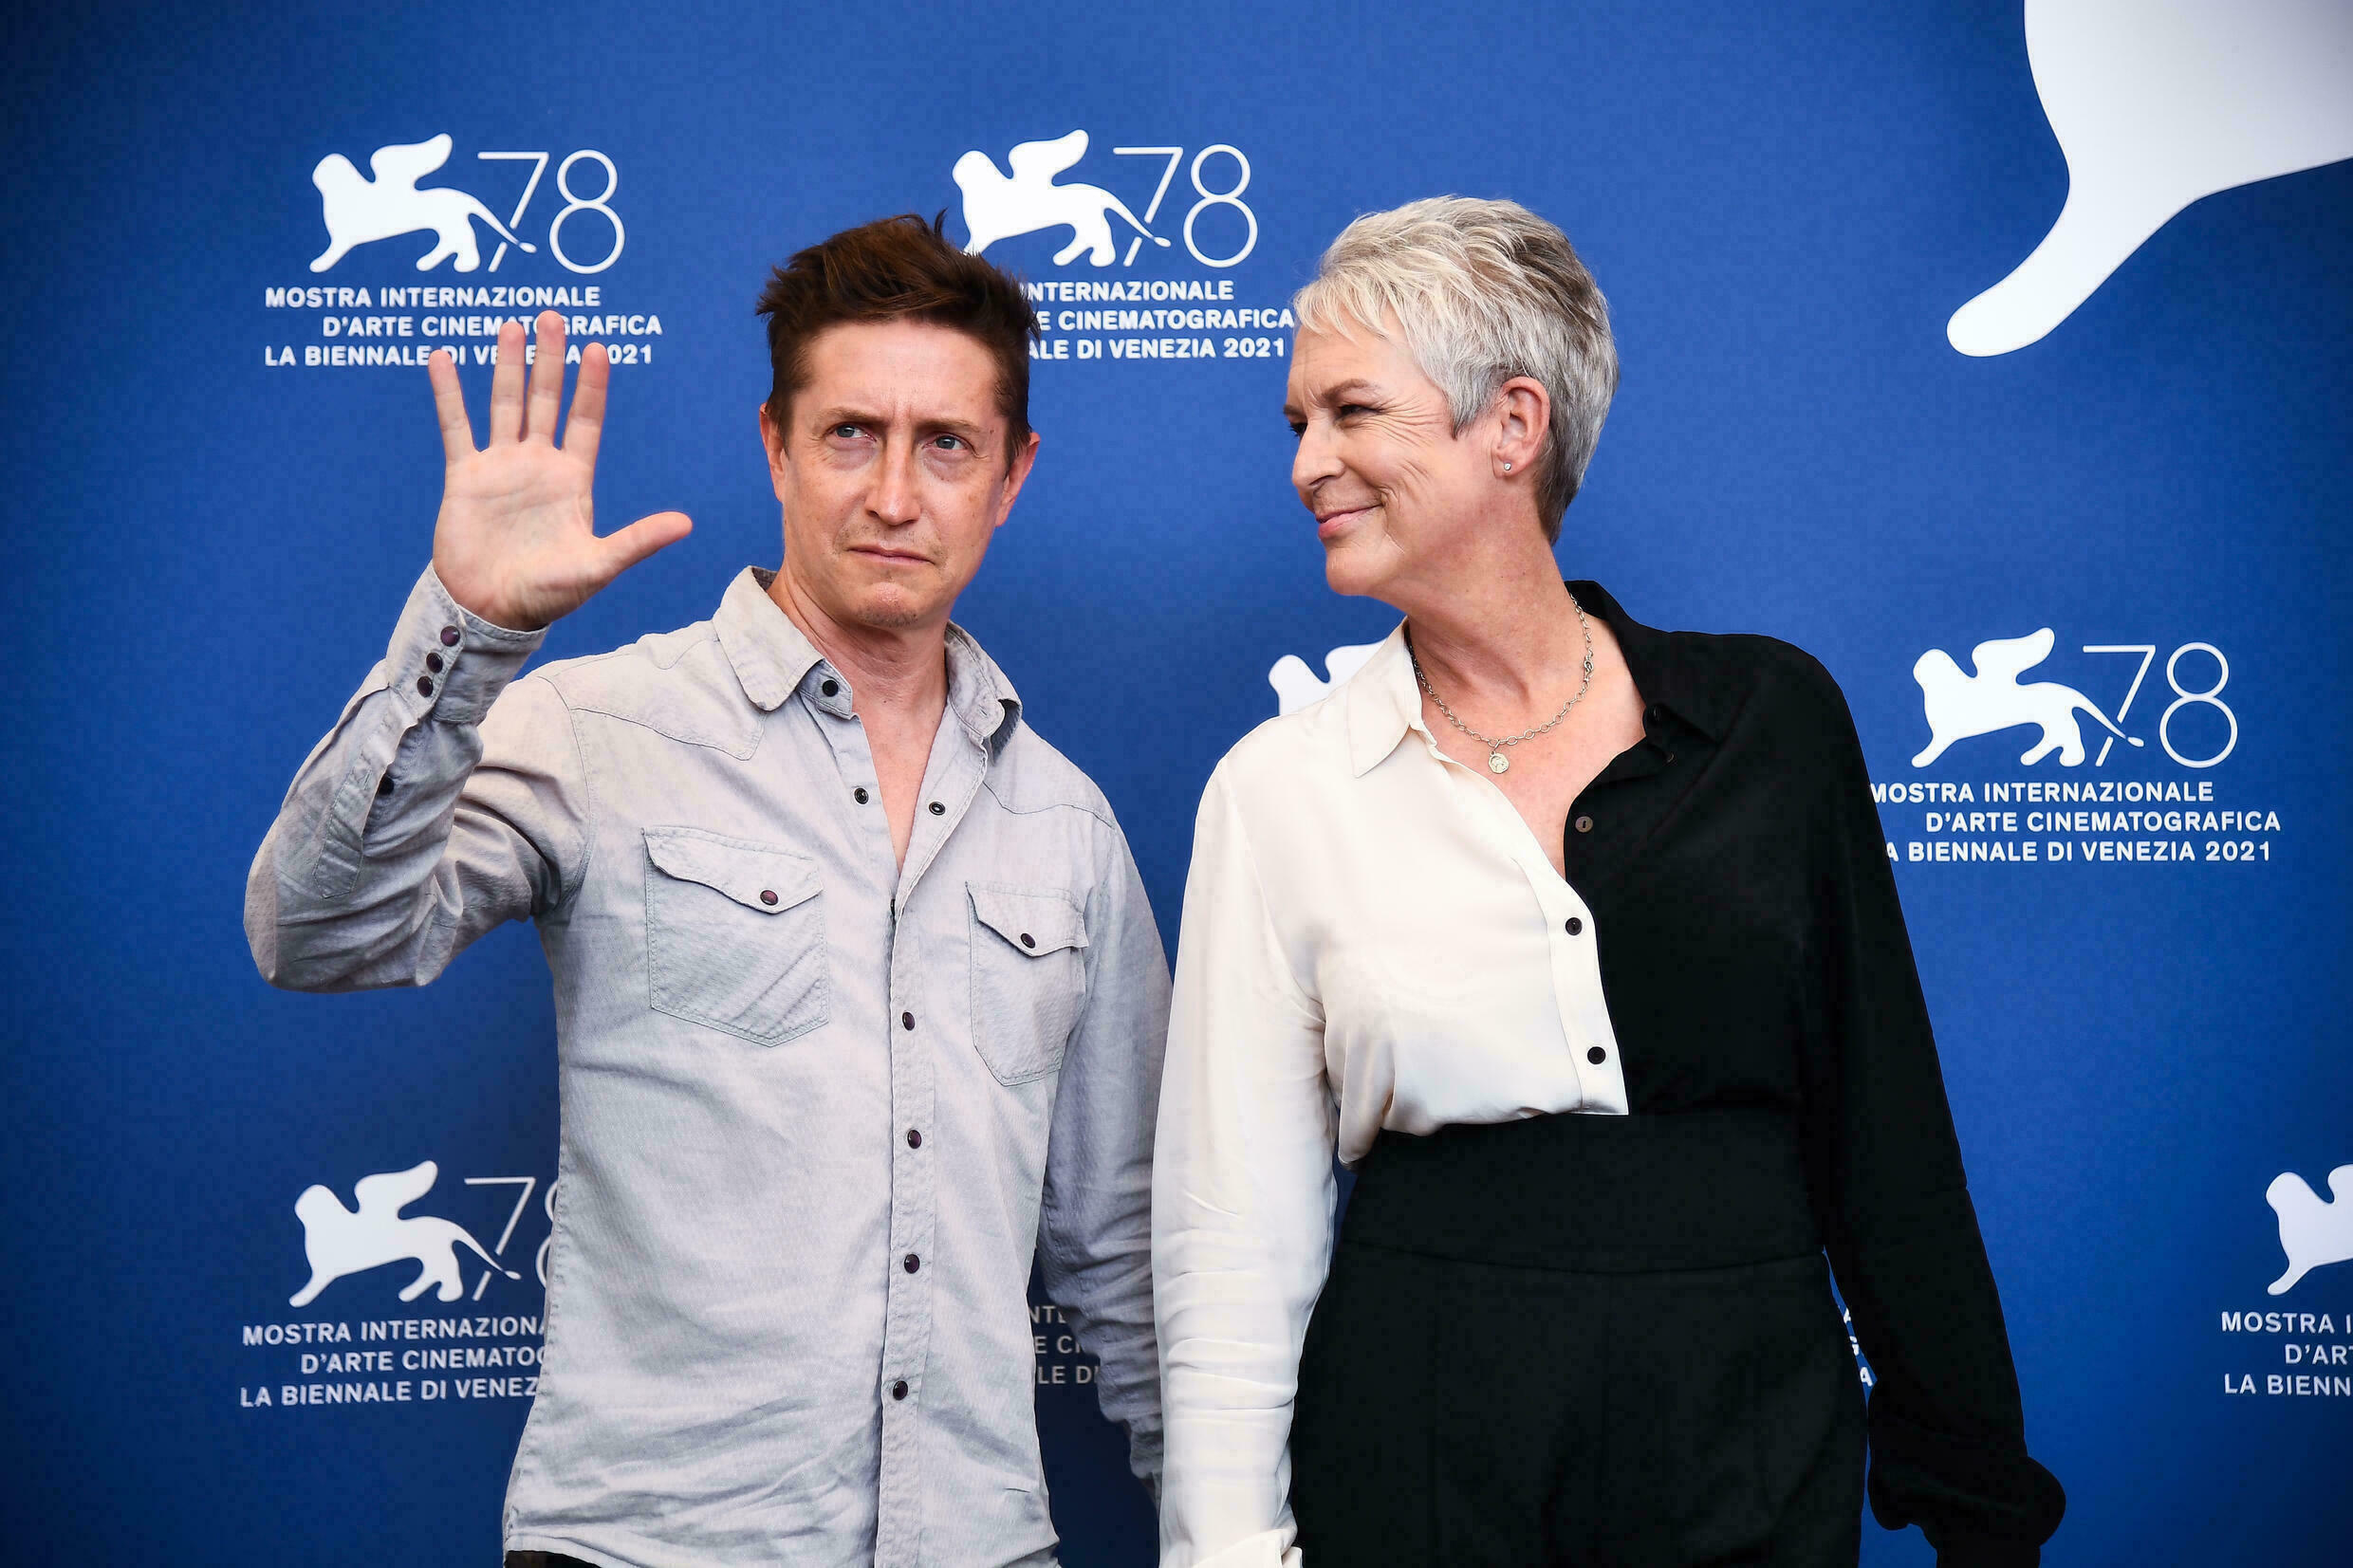 US director Gordon Green and actress Jamie Lee Curtis at the Film Festival on September 8, 2021